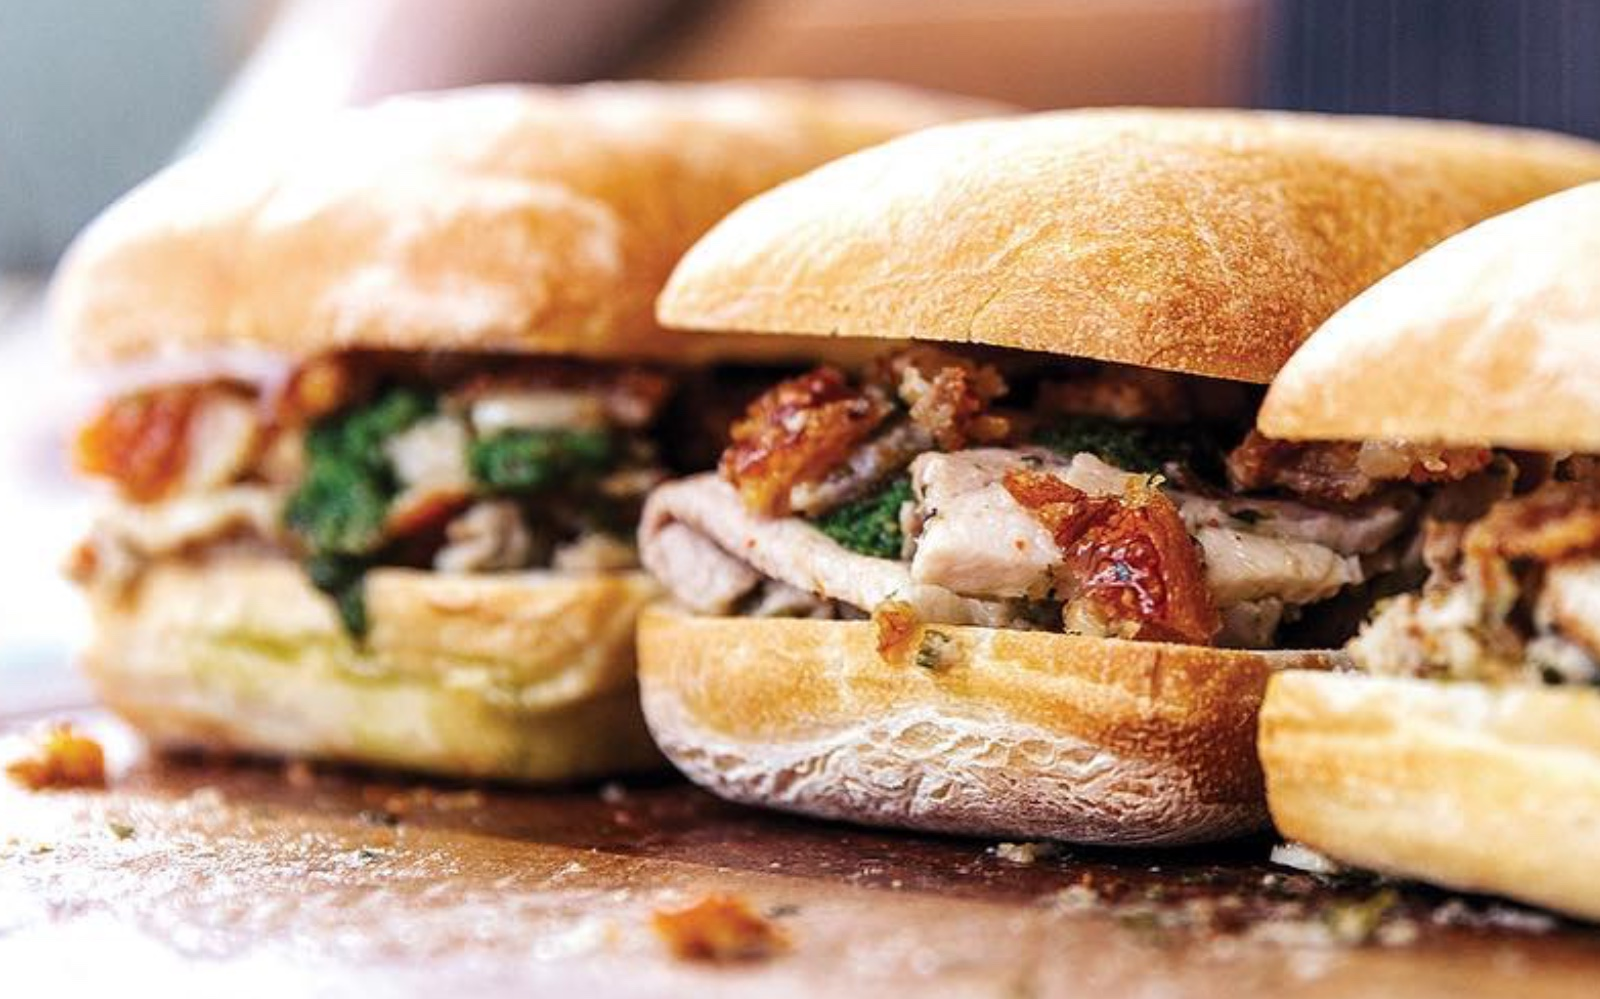 The porchetta sandwich at Meat and Bread, Vancouver